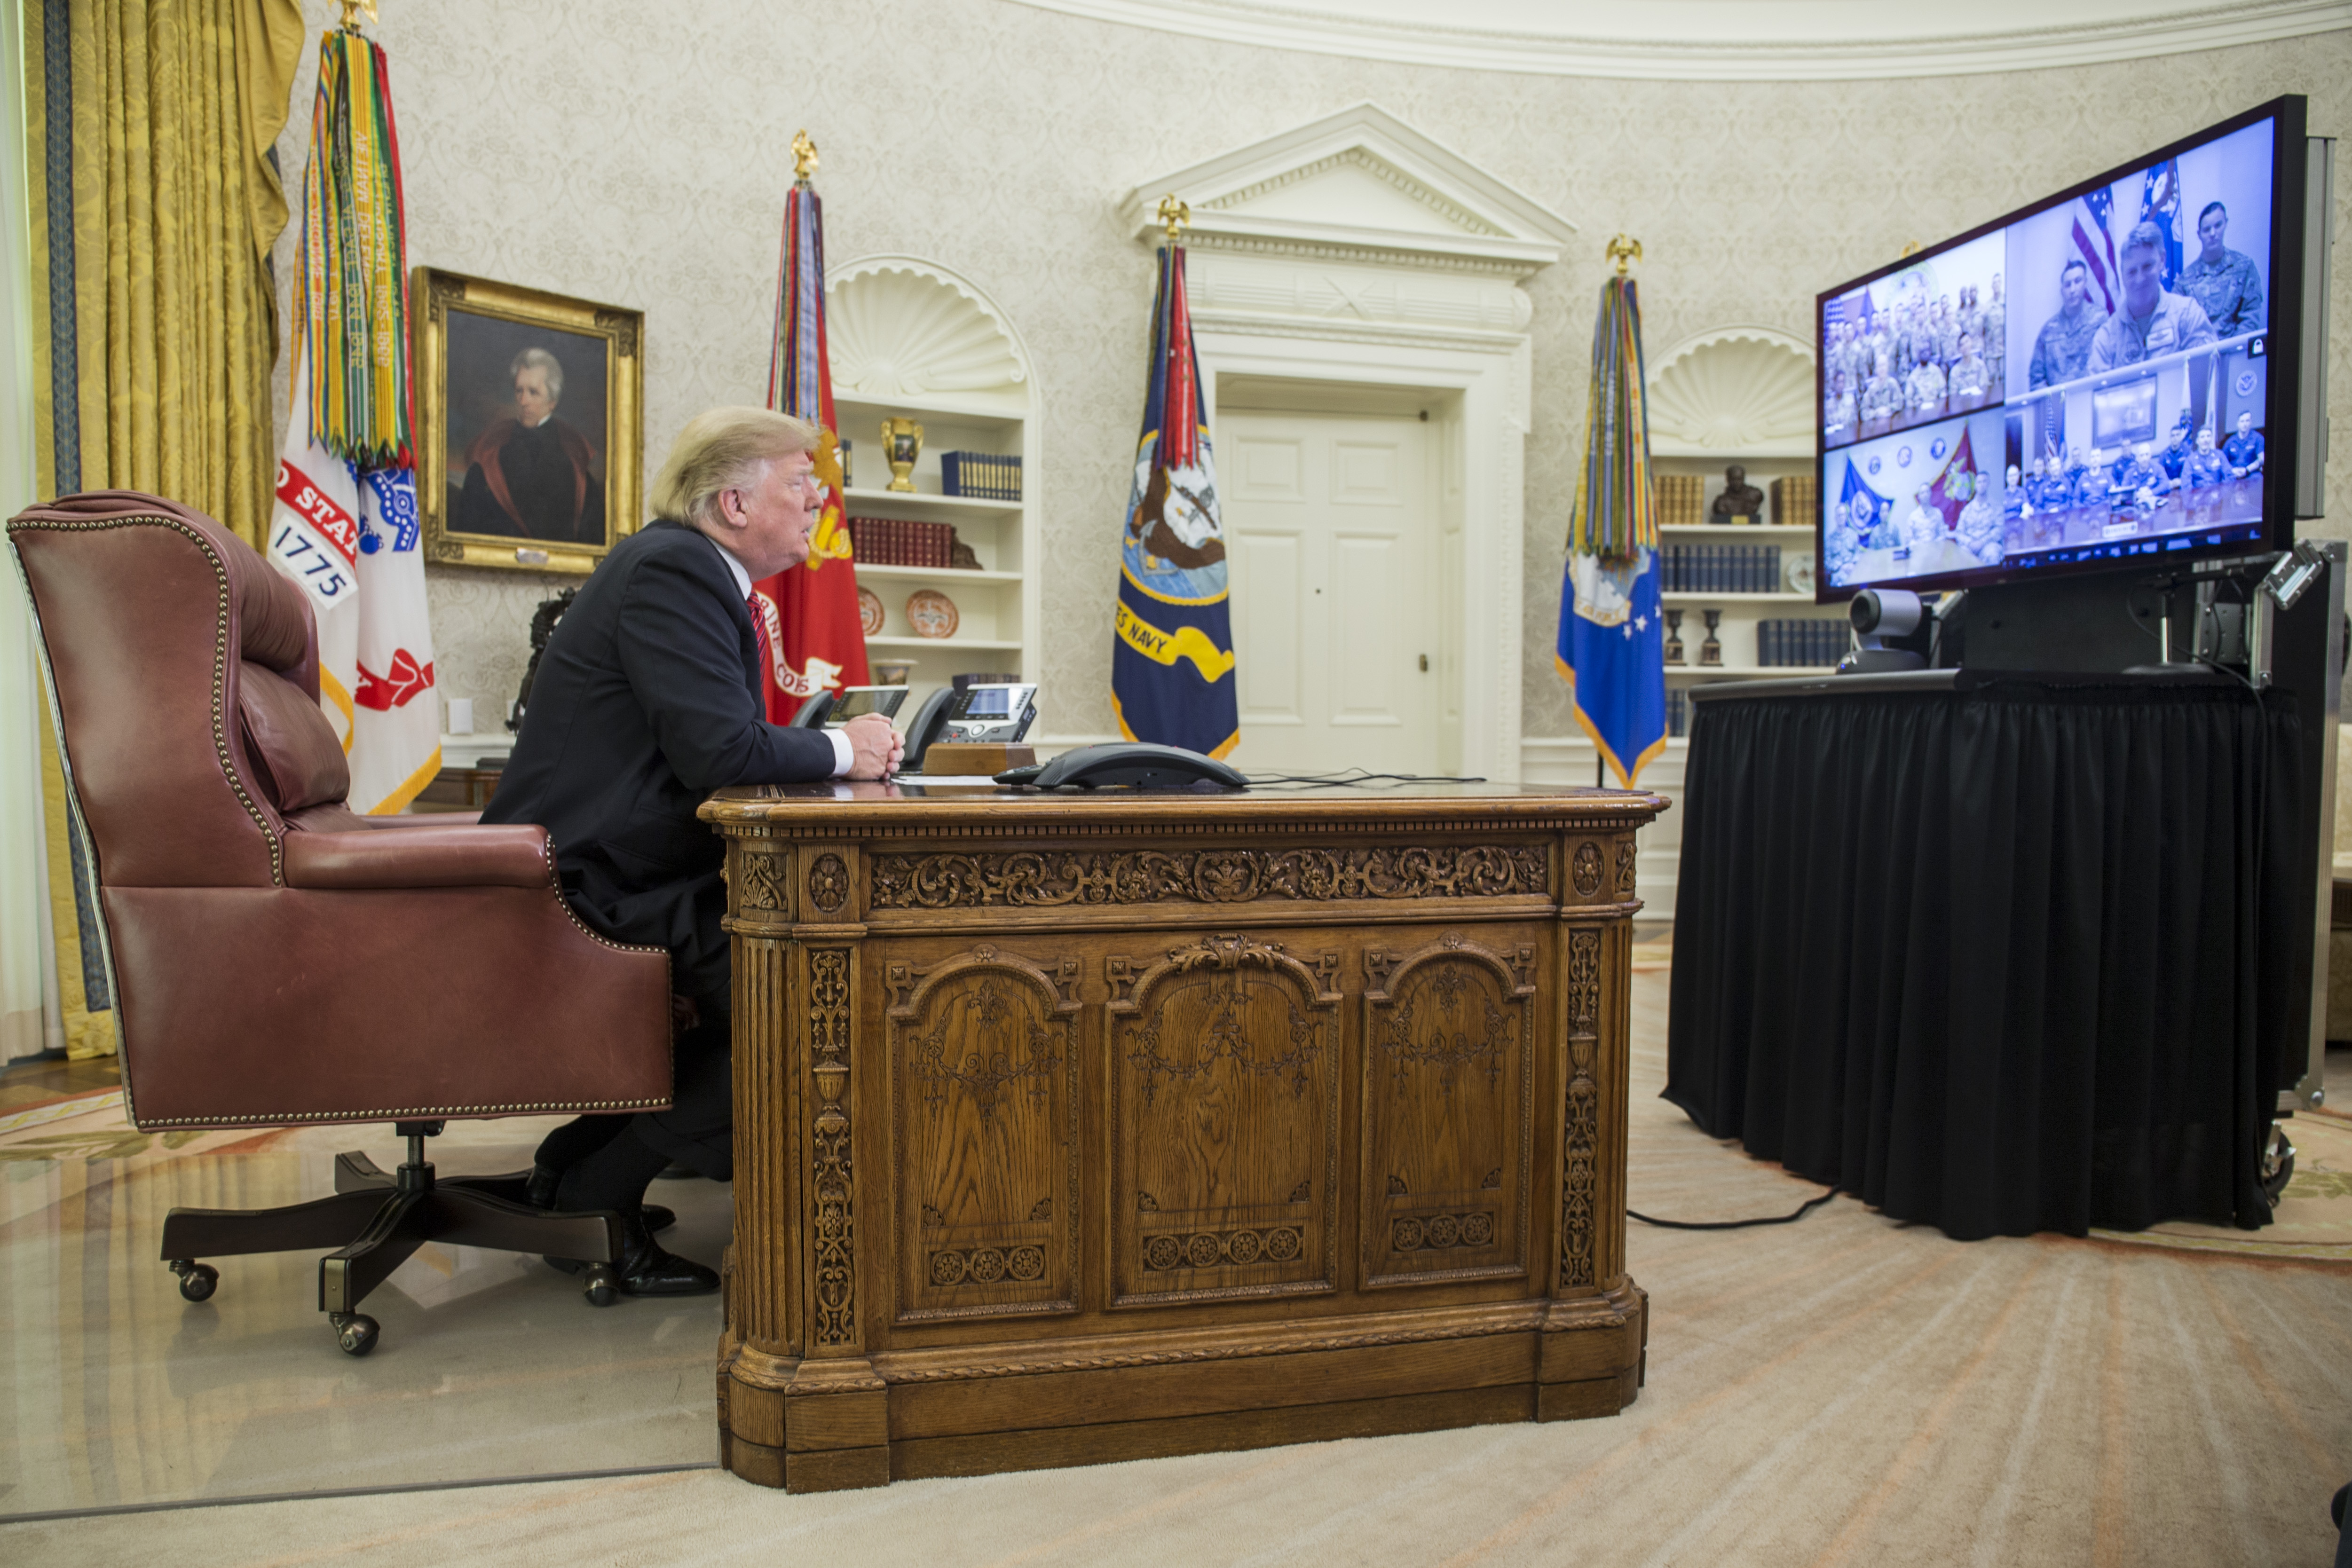 What it means that we keep talking about America like it's a TV show